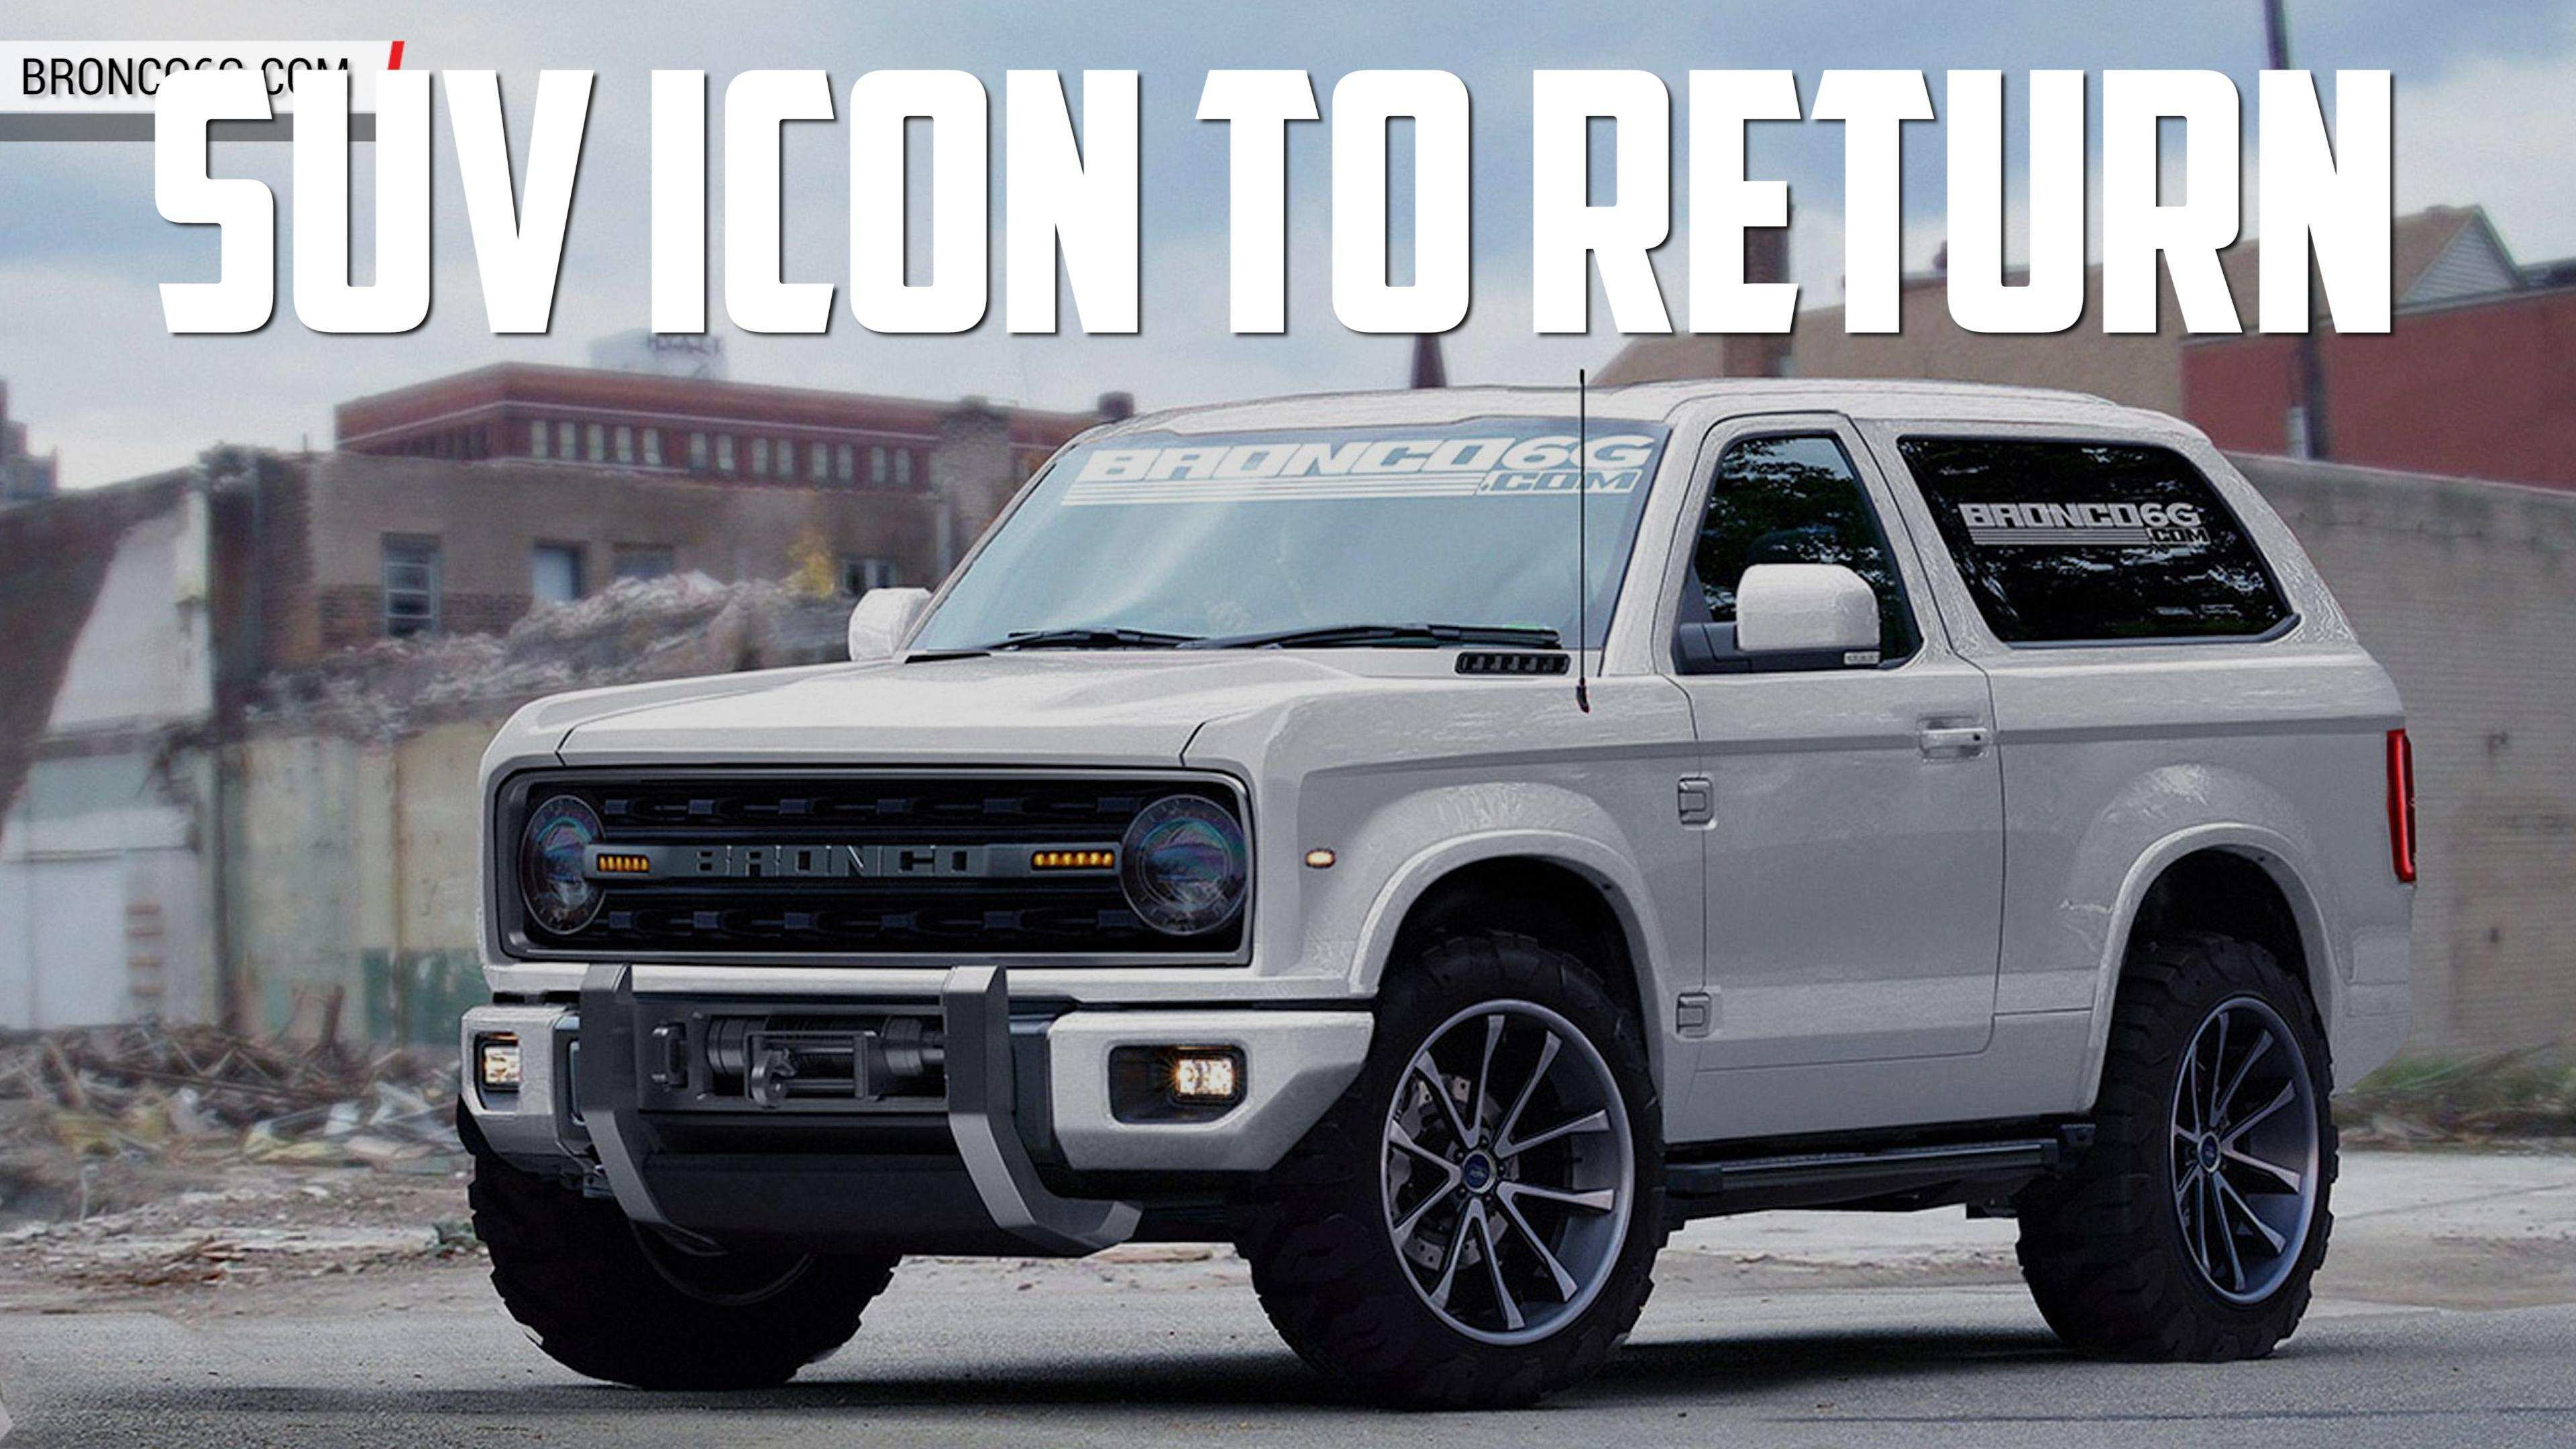 30 All New 2020 Ford Bronco Look Exterior and Interior for 2020 Ford Bronco Look